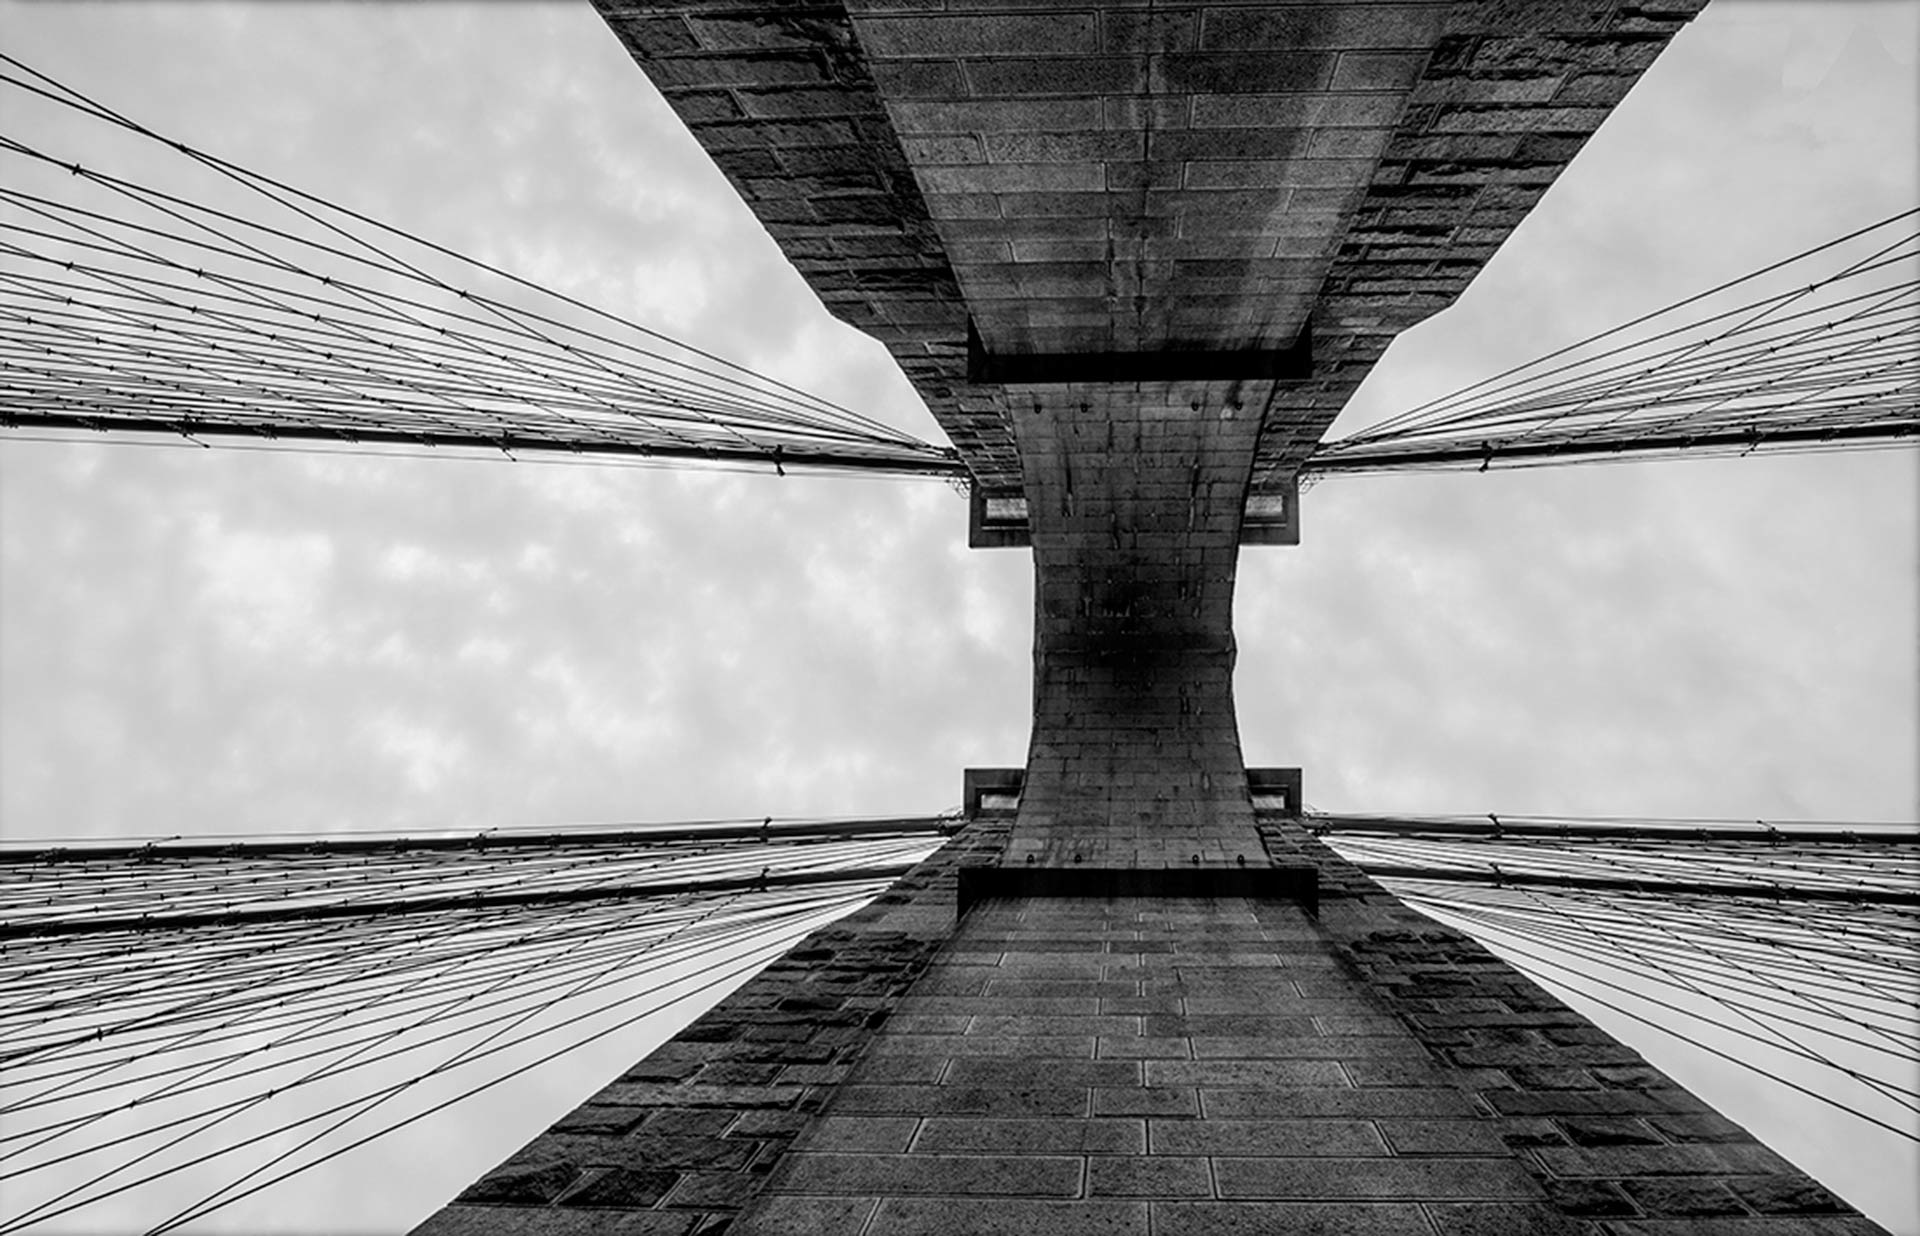 STEFANO ZARDINI Manhattan Tower of Brooklyn Bridge cm. 66,7 x 100 image, Dibond mount, framed Edition 1/30